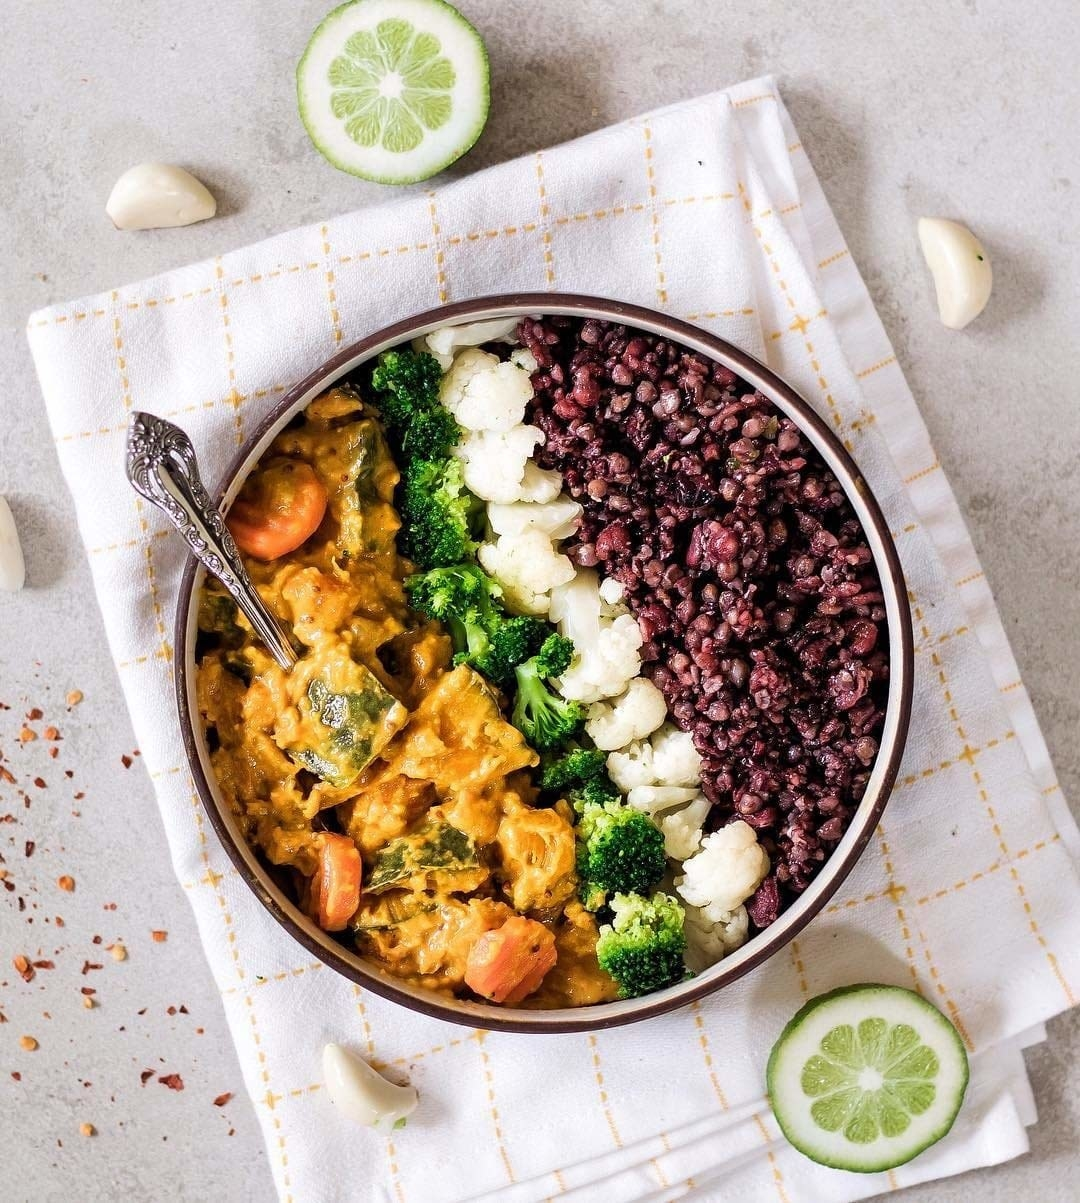 A one bowl meal consisting of black rice, cauliflower, broccoli, and curry